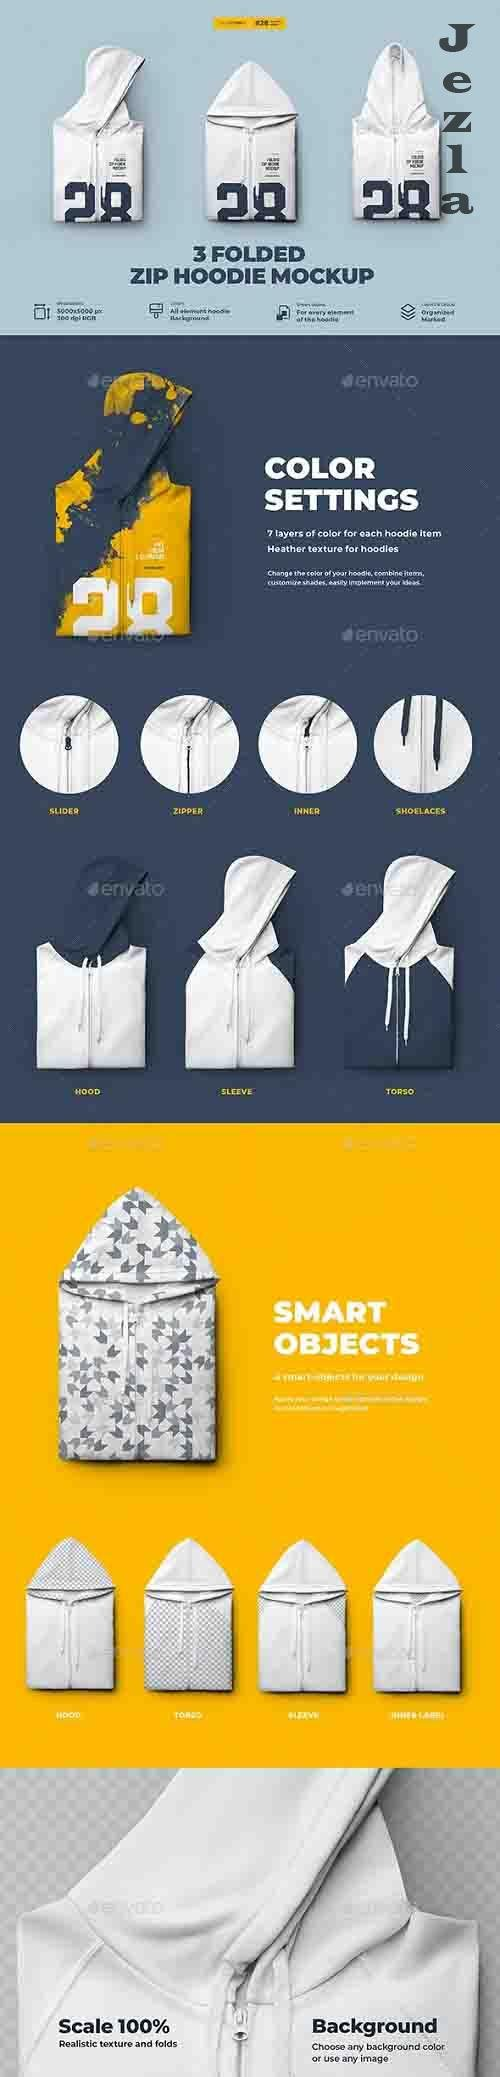 GraphicRiver - 3 Folded Zip Hoodie Mockup 30653884